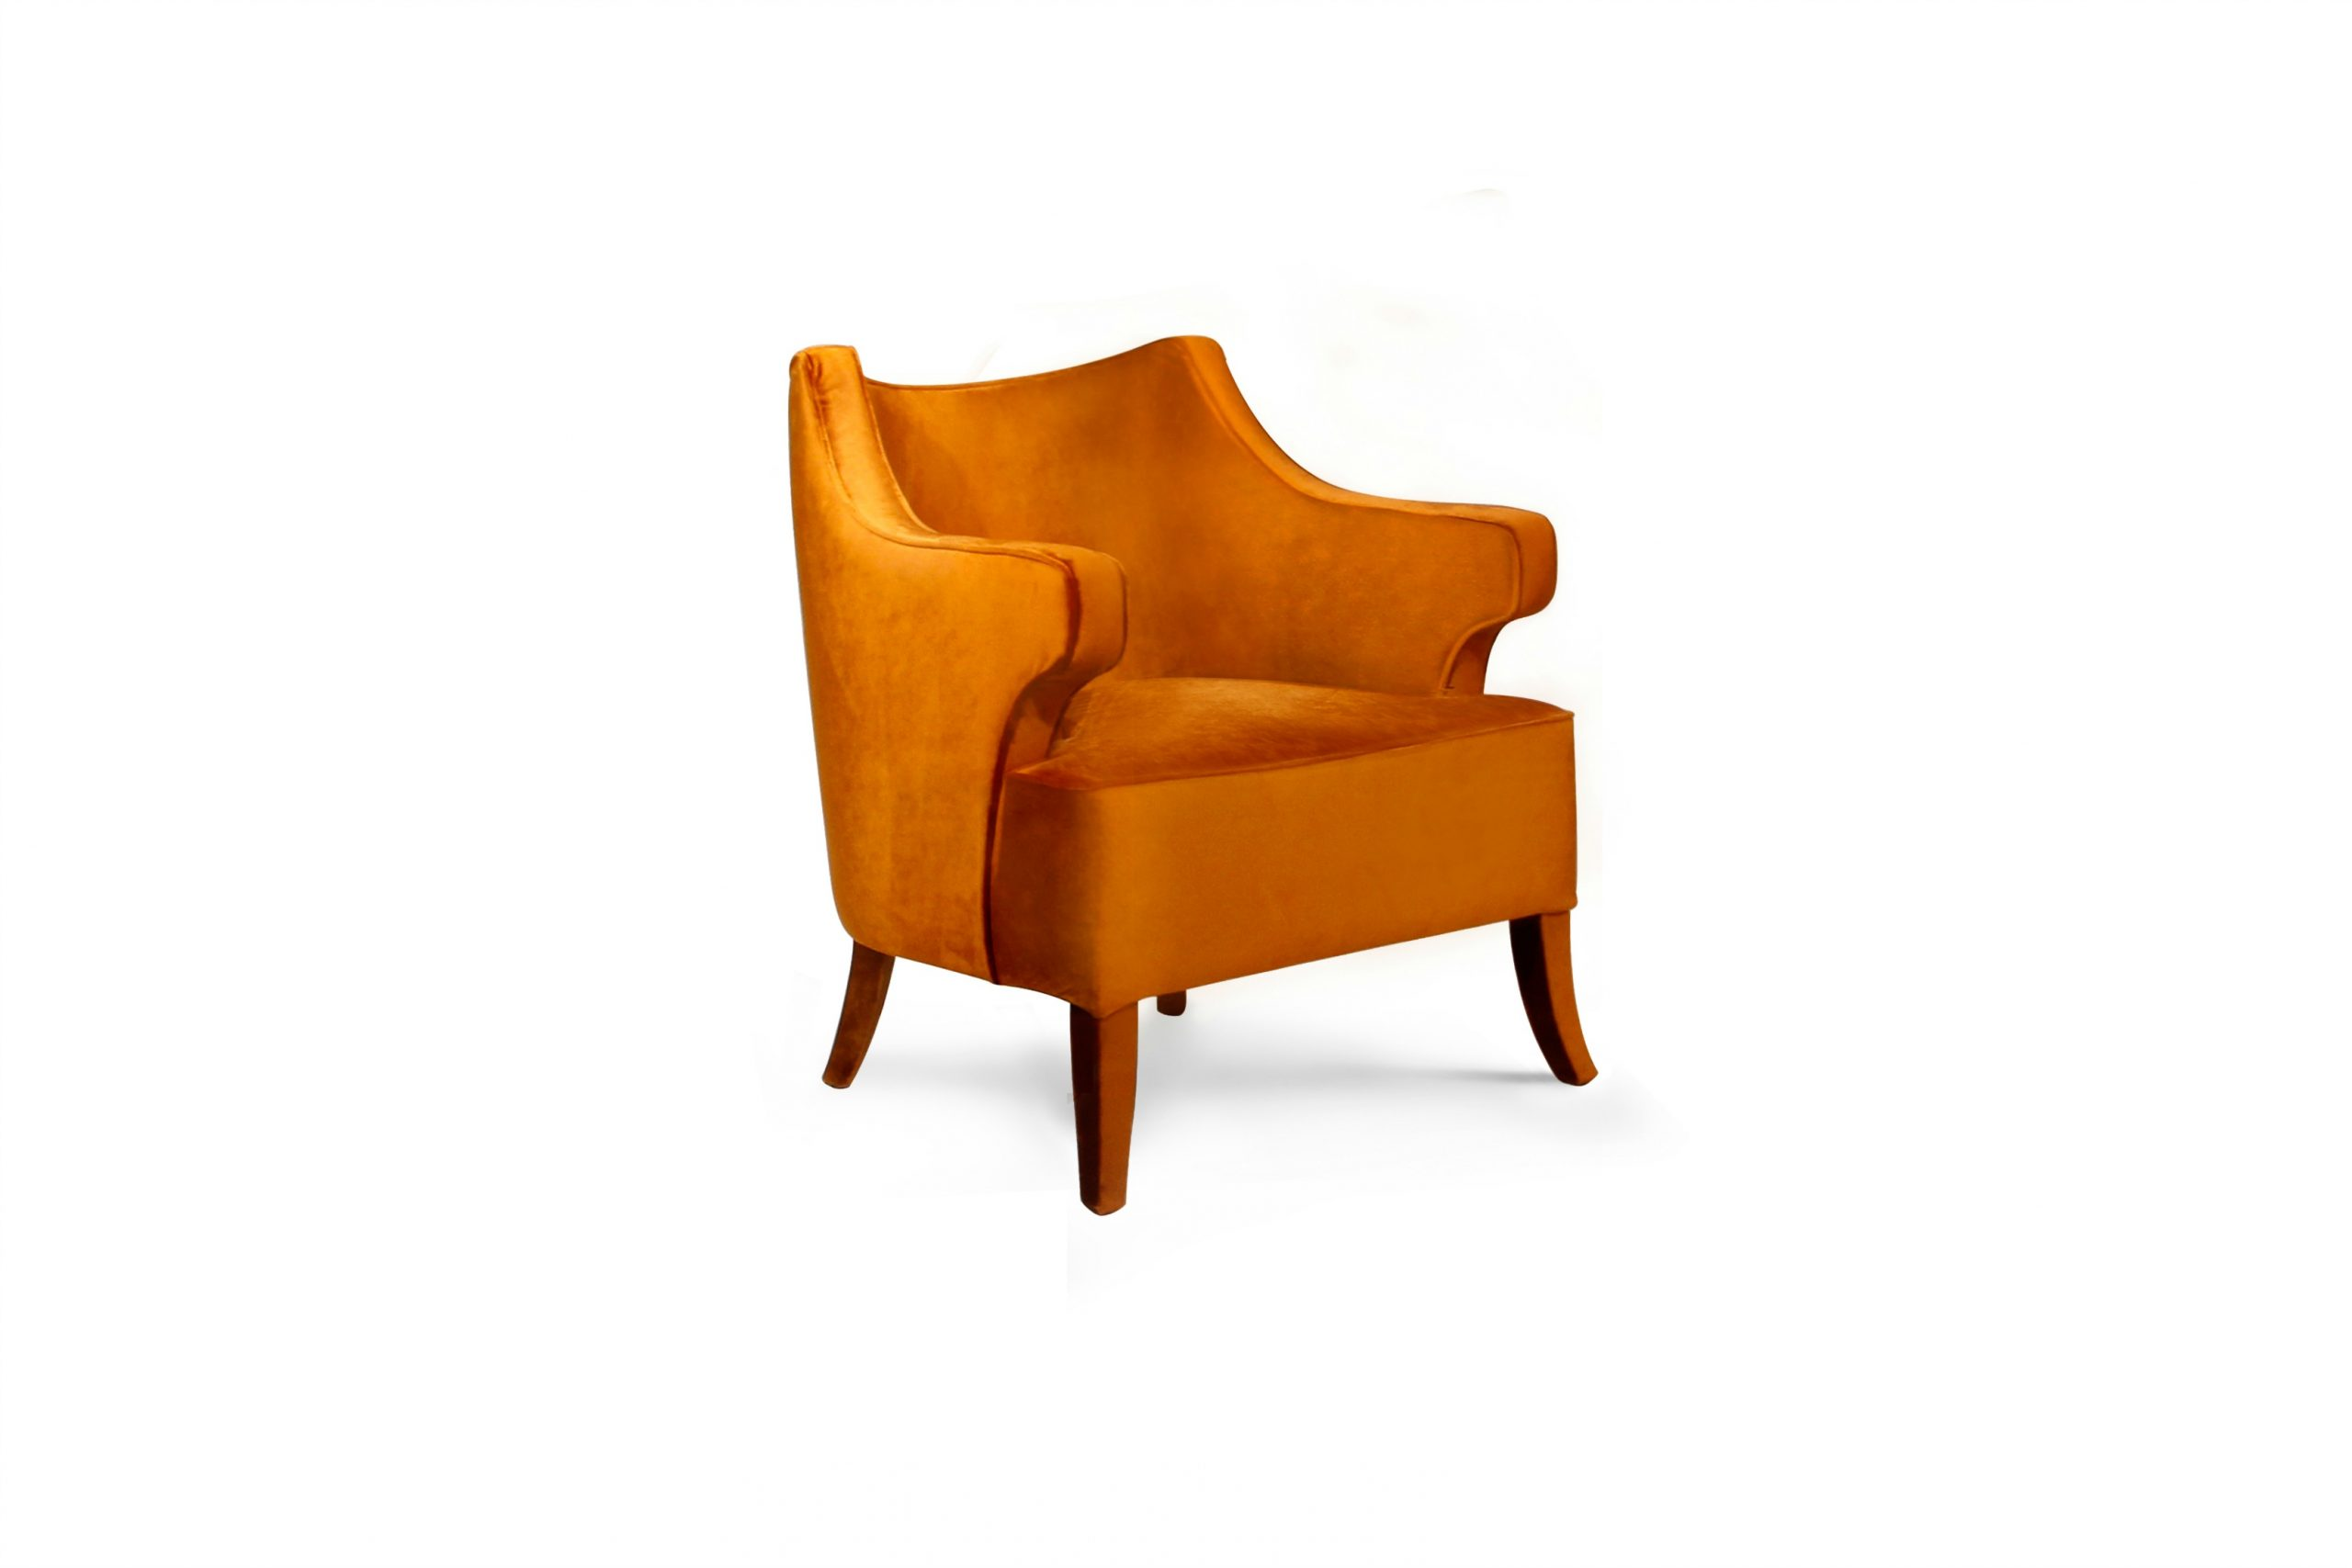 drake/anderson Drake/Anderson: Interior Design Meets Modernism and History java armchair 2 HR 1 full size scaled